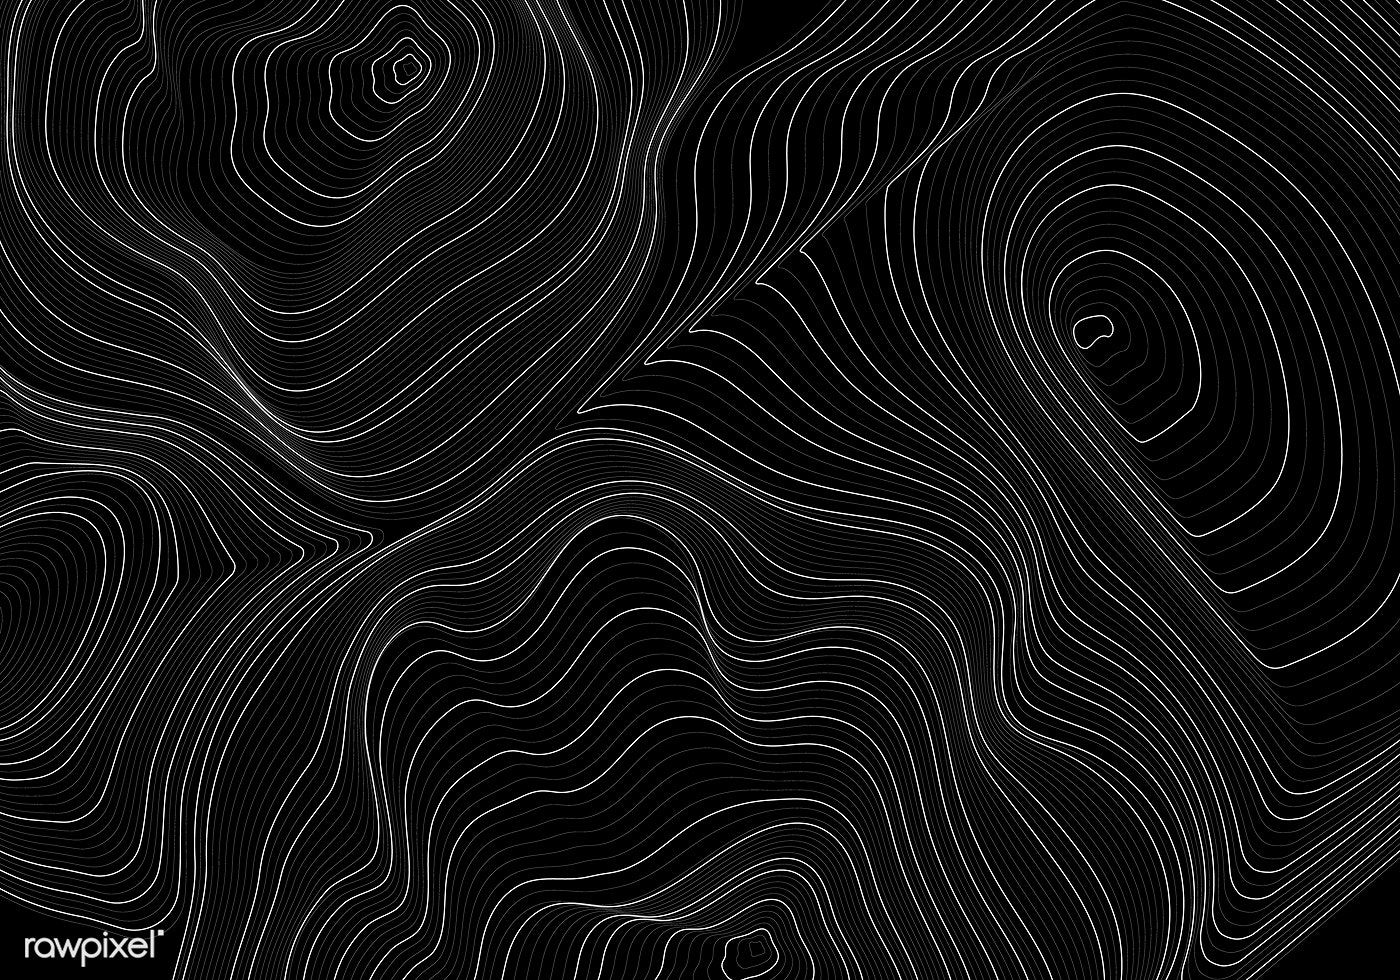 Black and white abstract map contour lines background free image by rawpixel com aew